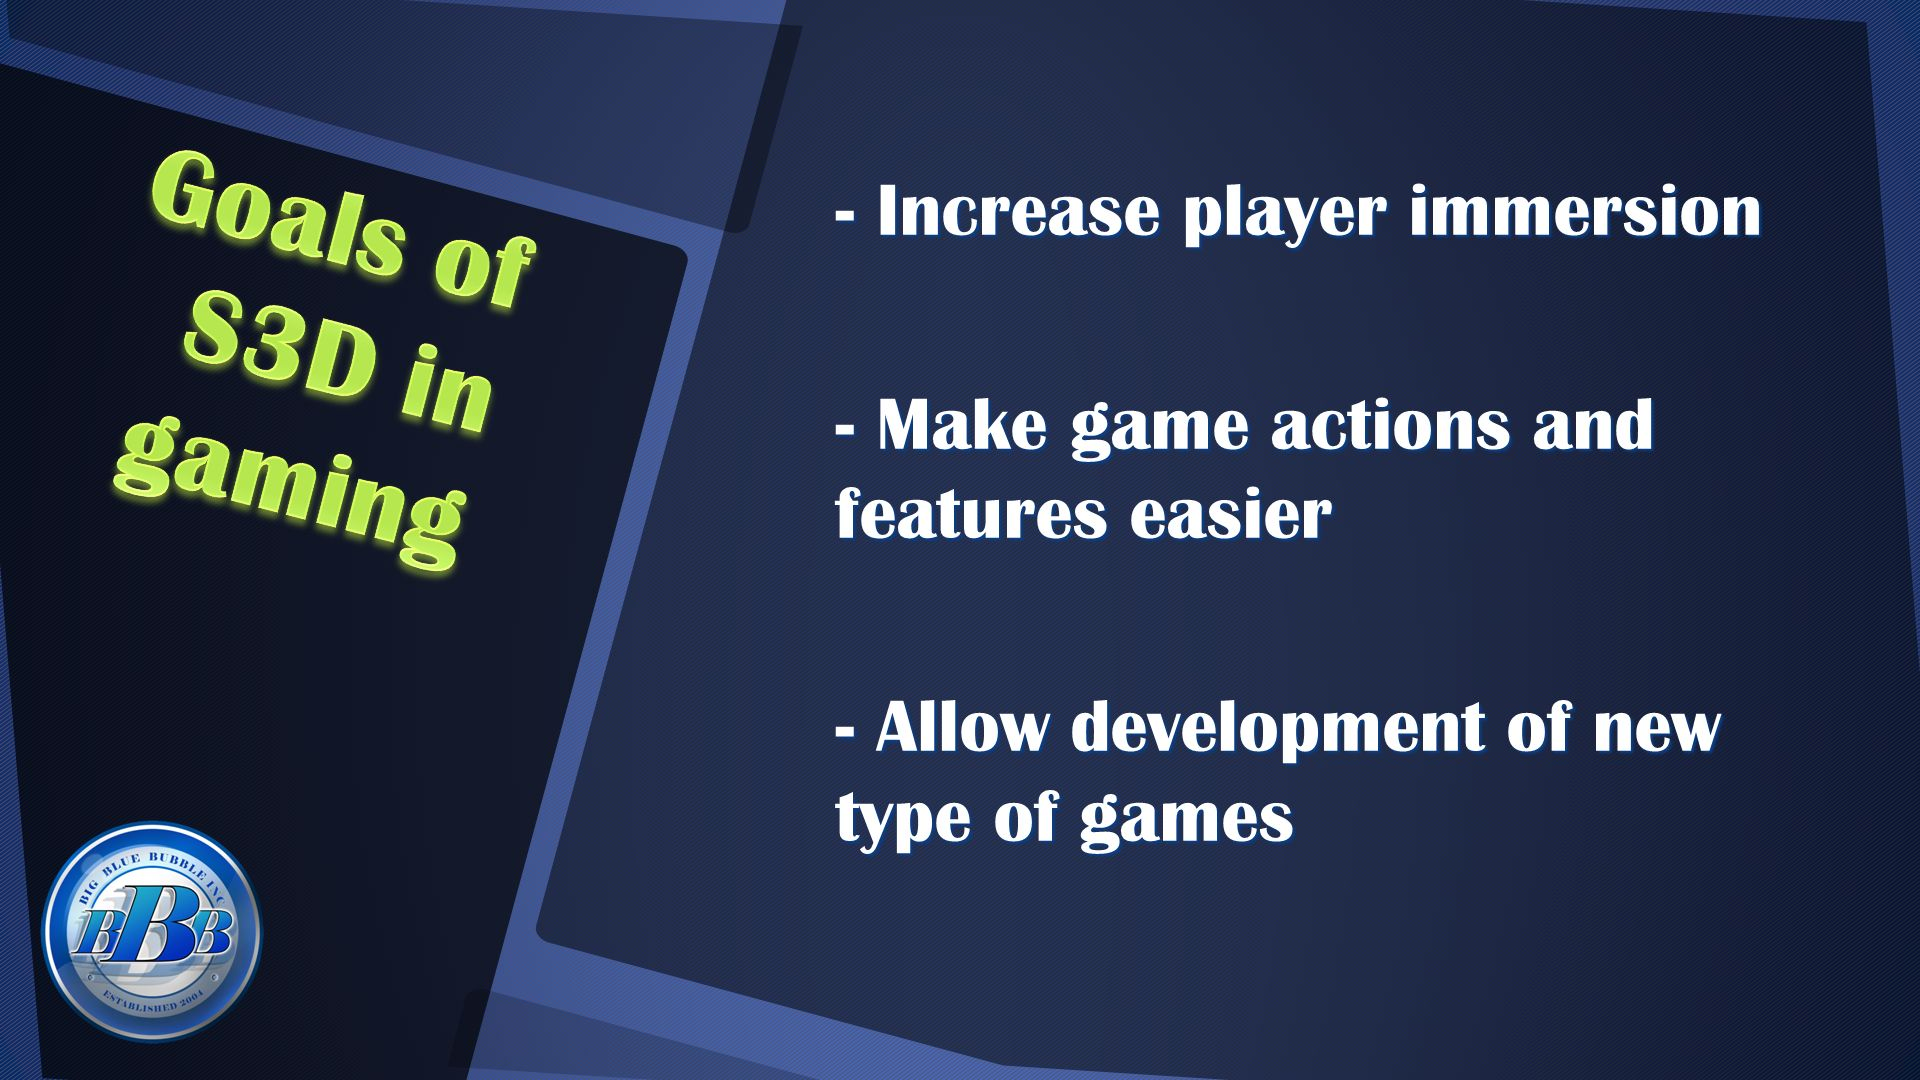 - Increase player immersion - Make game actions and features easier - Allow development of new type of games